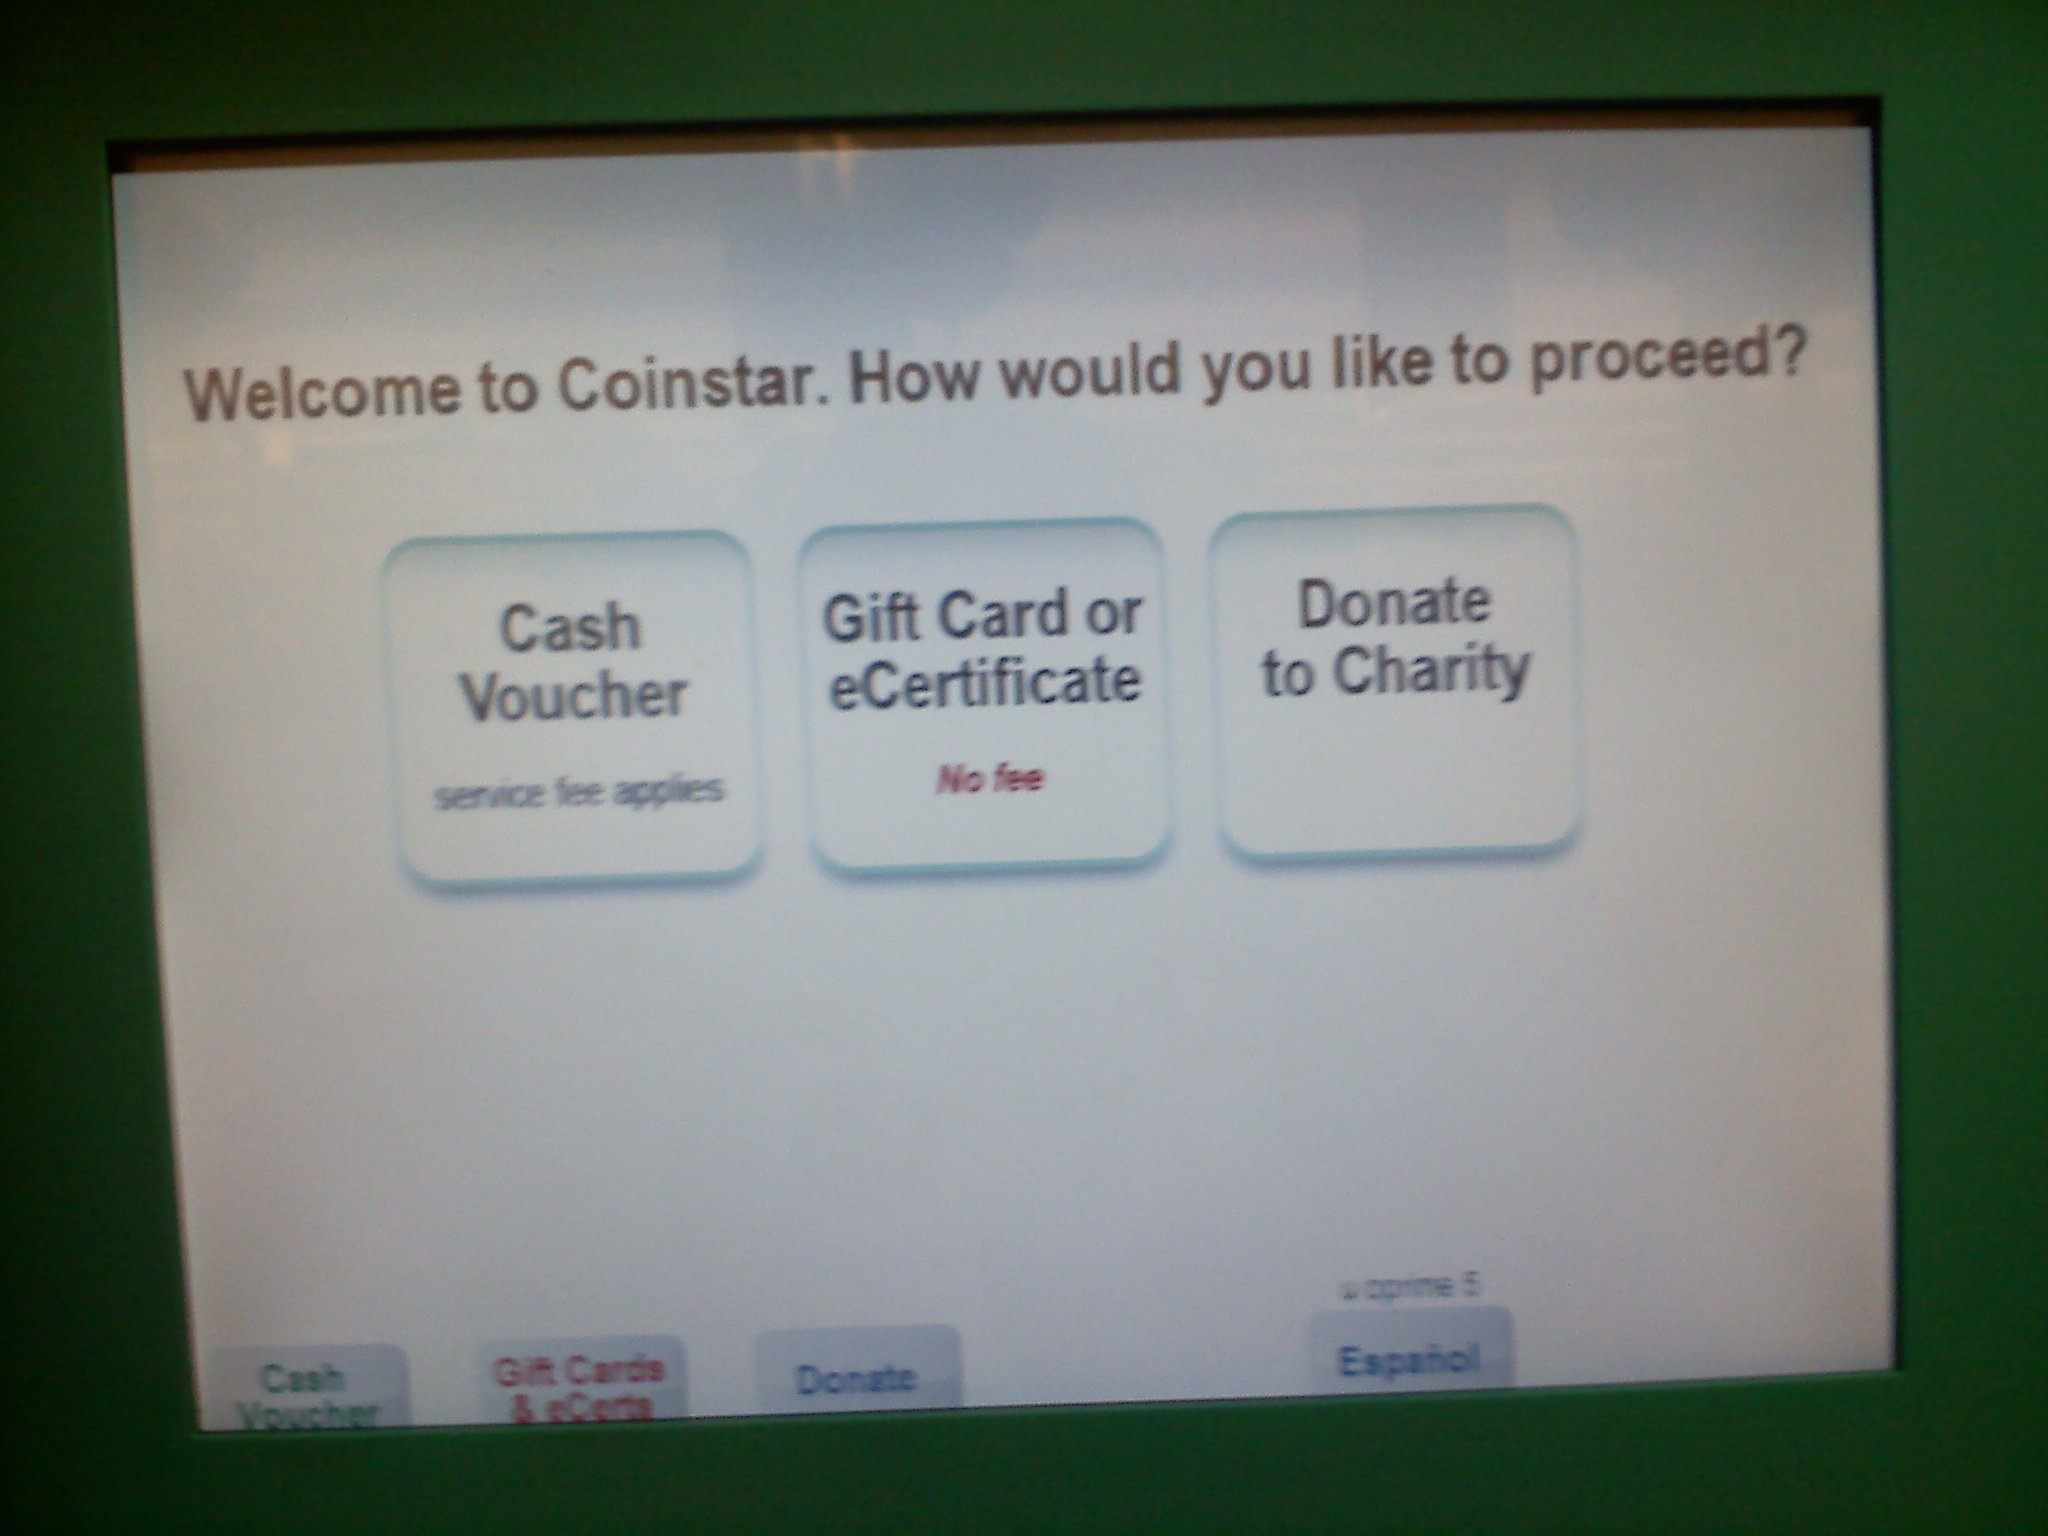 Cashing In On Coins Using the #NOFEECoinstar Kiosk At Stop & Shop ...